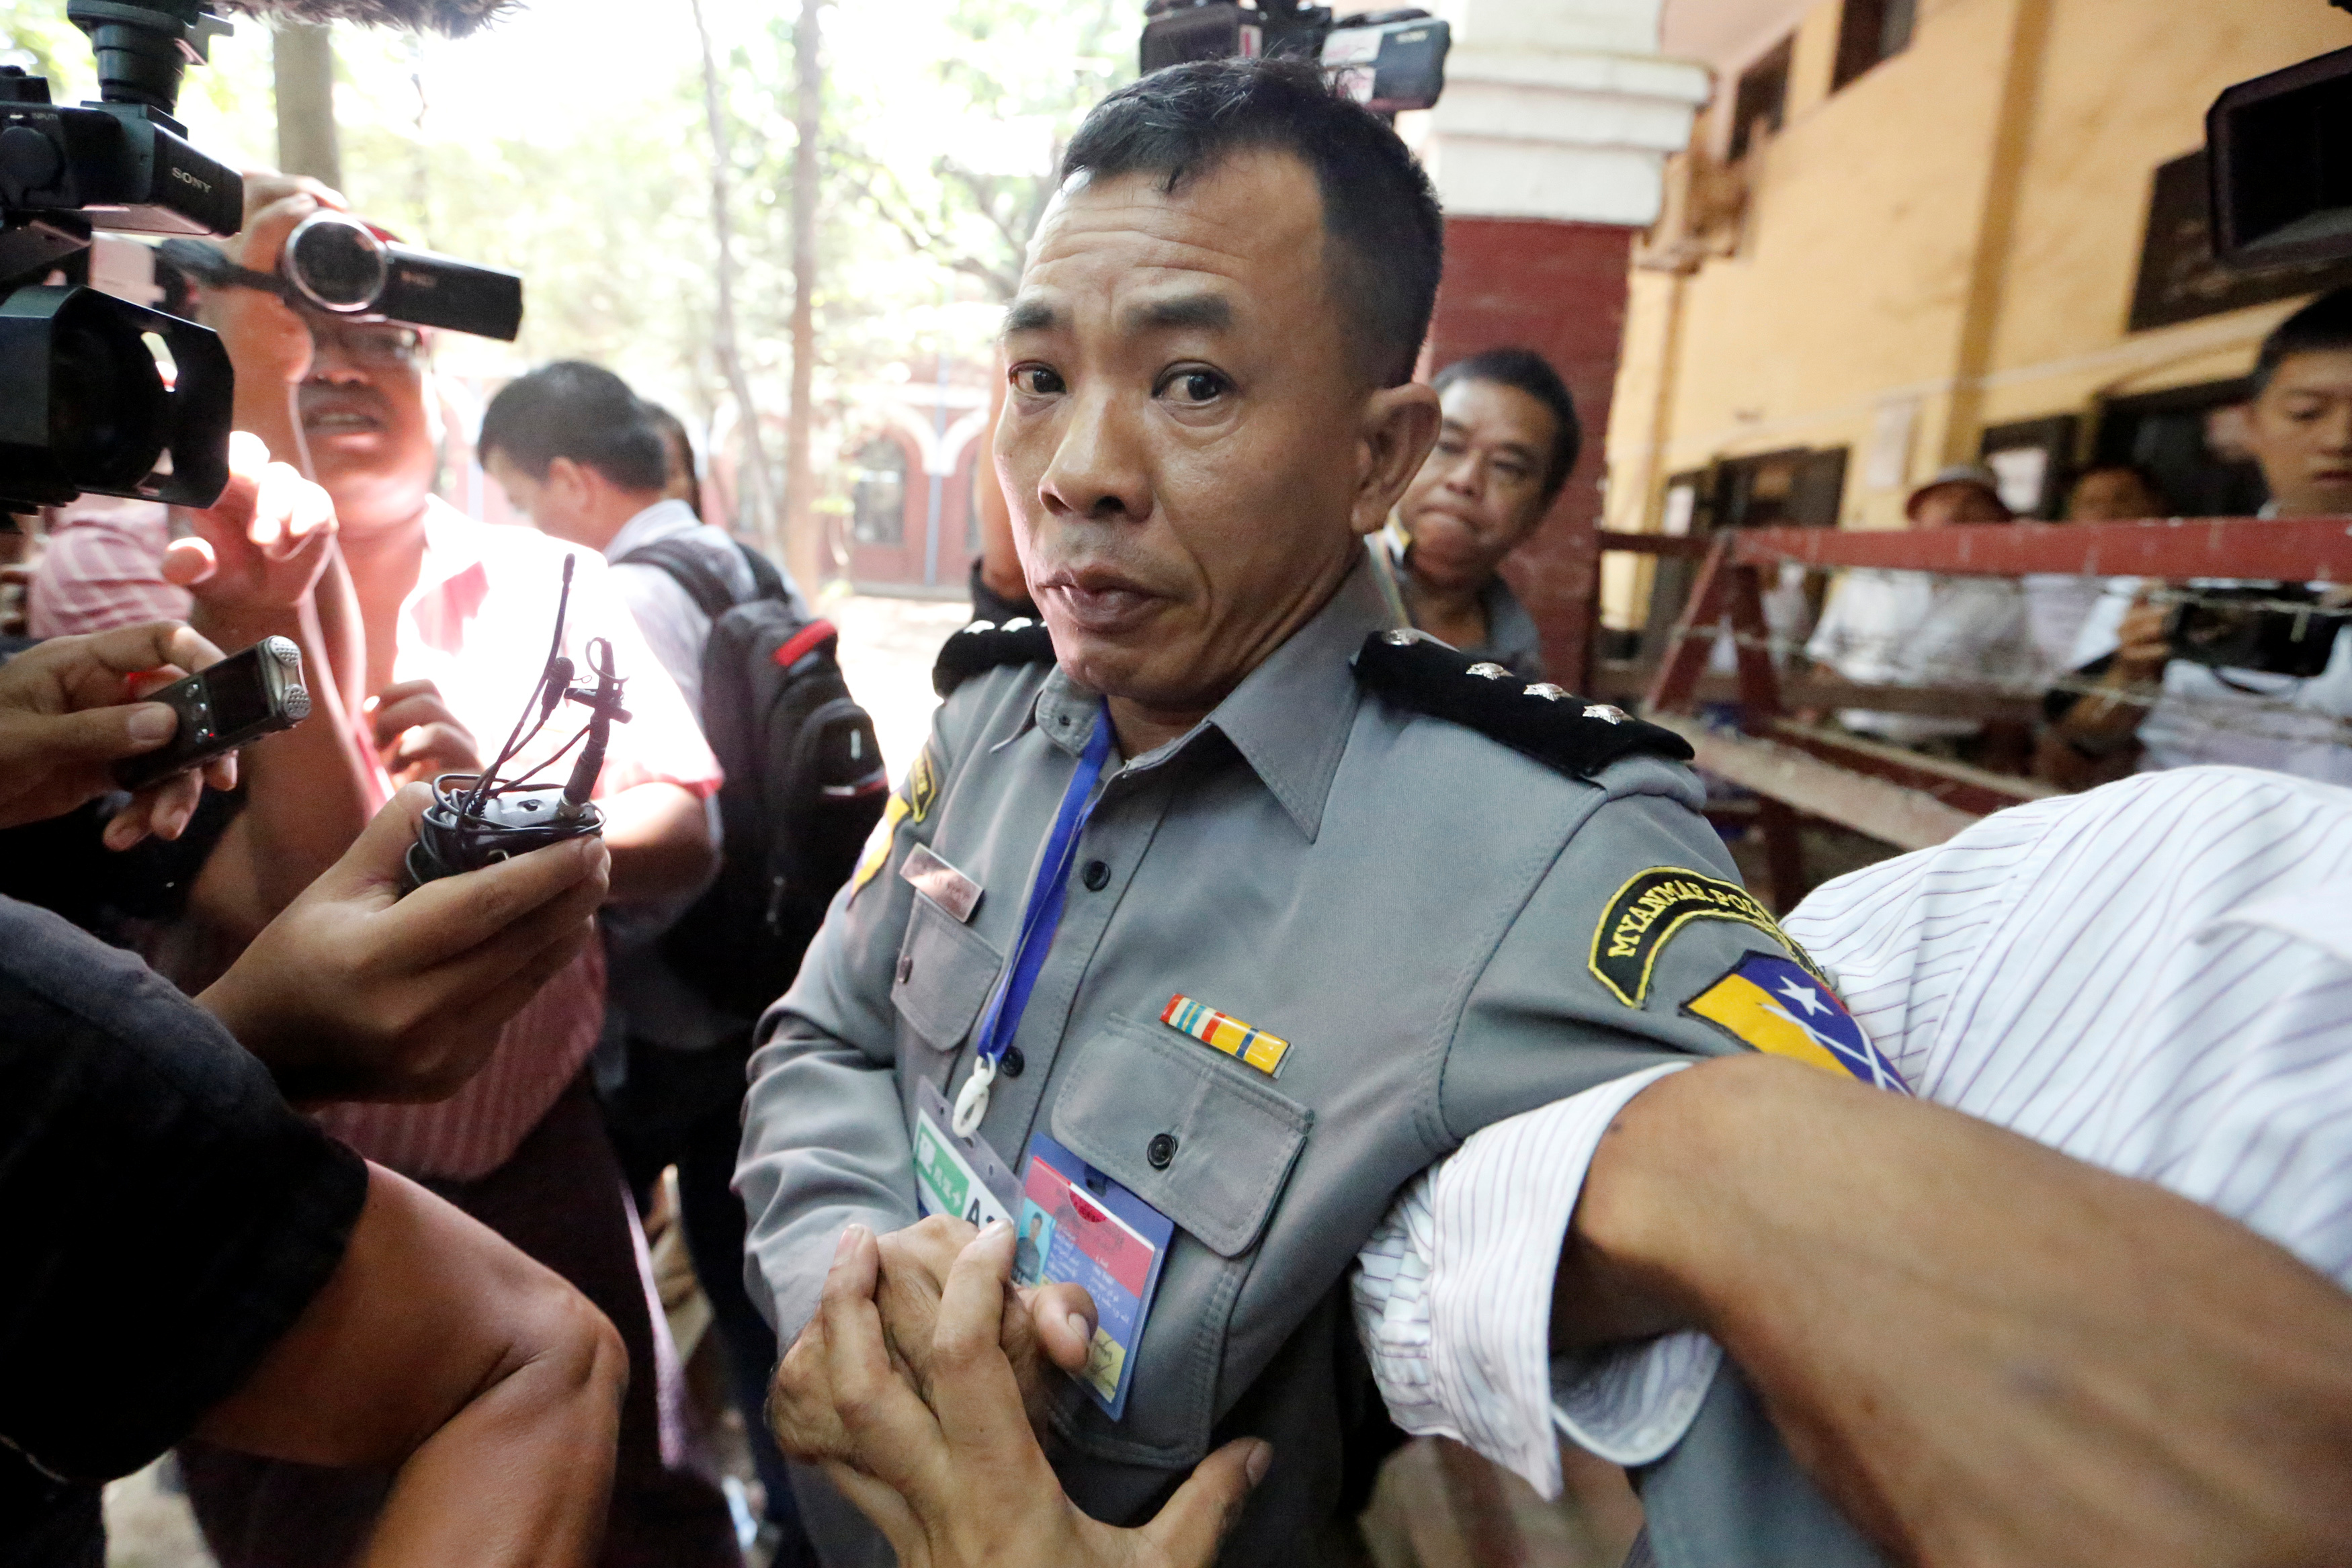 Police captain Moe Yan Naing outside the court room during a hearing of detained Reuters journalists Wa Lone and Kyaw Soe Oo in Yangon, Myanmar April 20, 2018 .